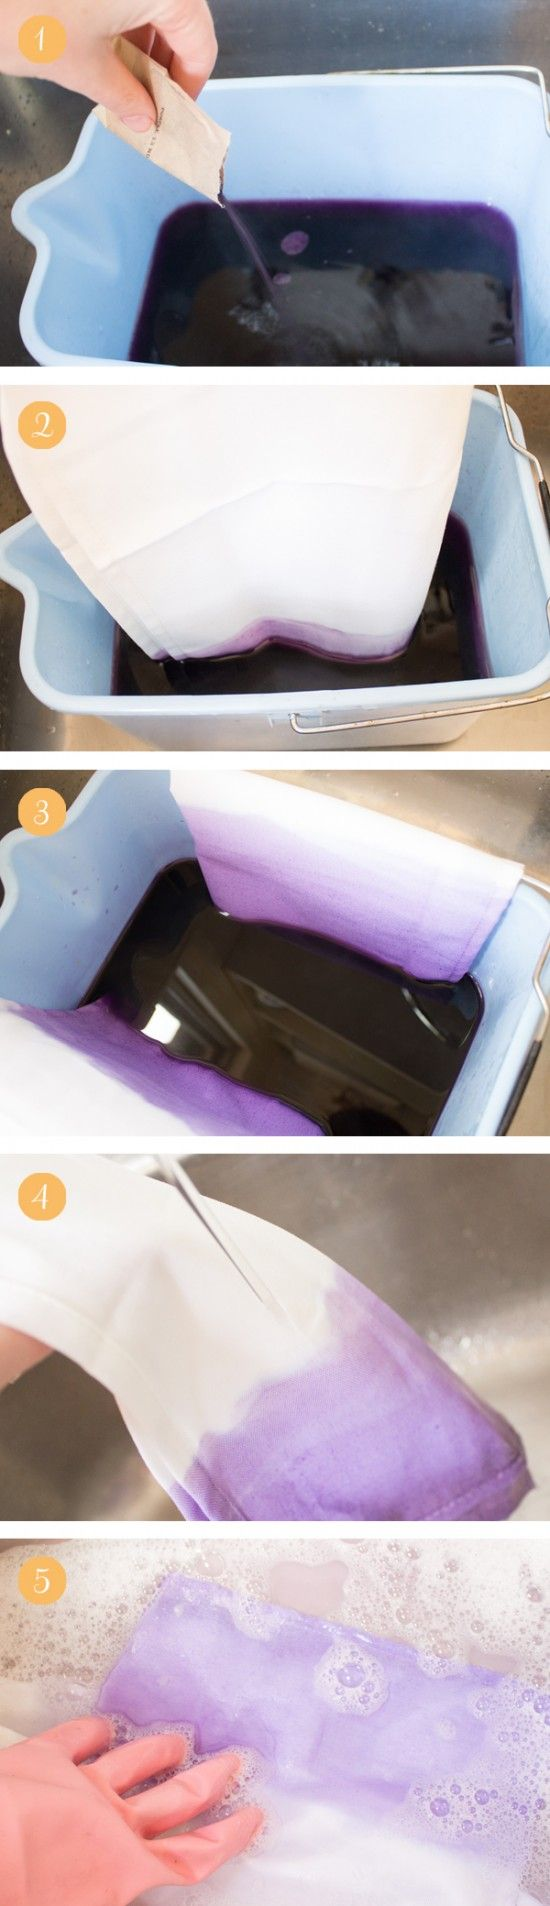 Ombre Dip-Dyed Napkins – Dip Dyeing Tutorial #dyeingtutorials